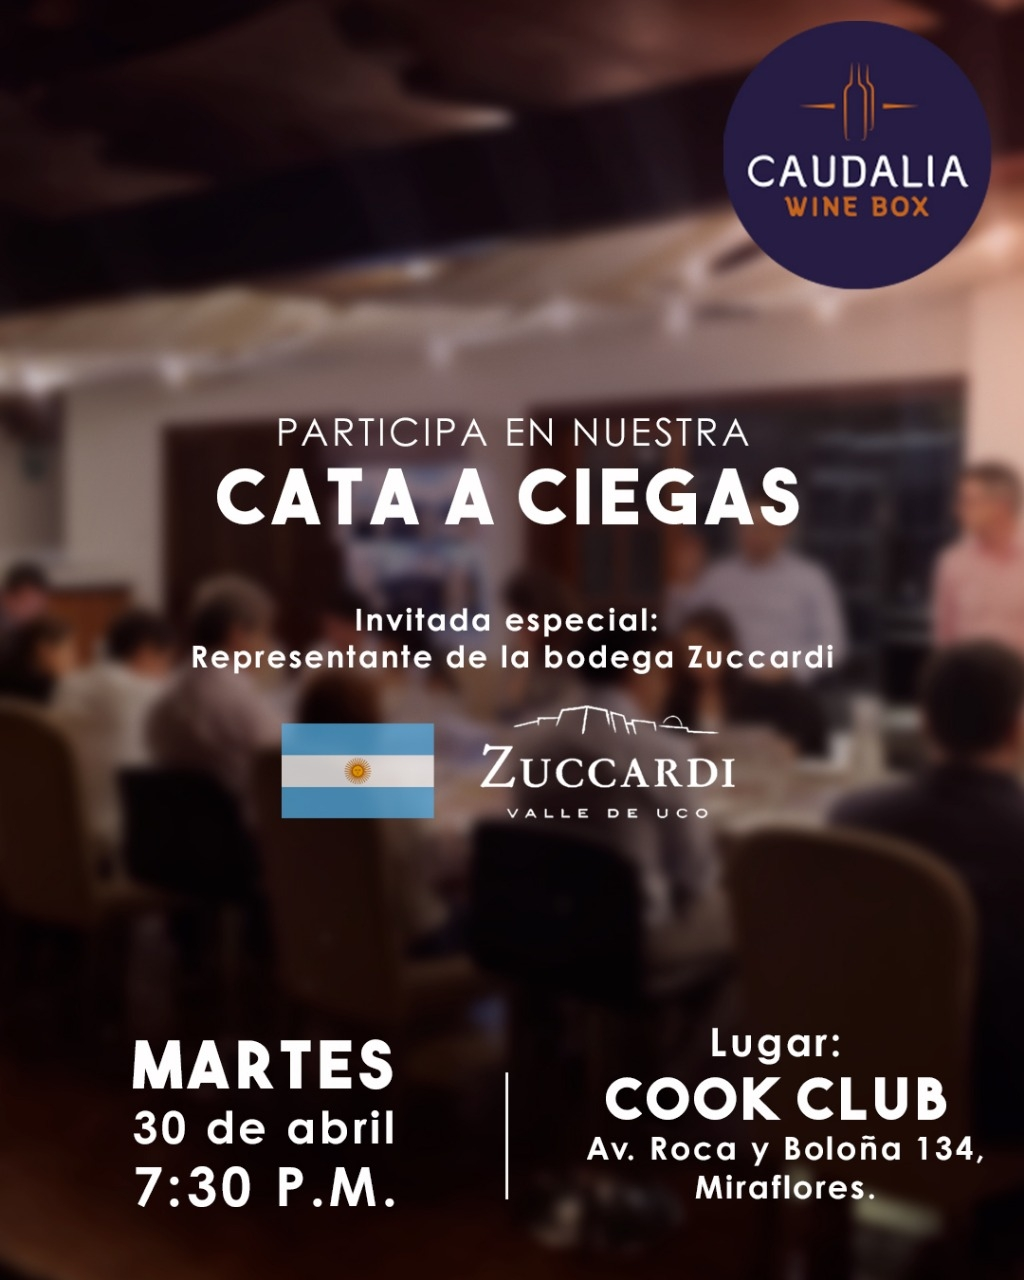 Caudalia Wine Discoveries abril 2019. Bodega Zuccardi